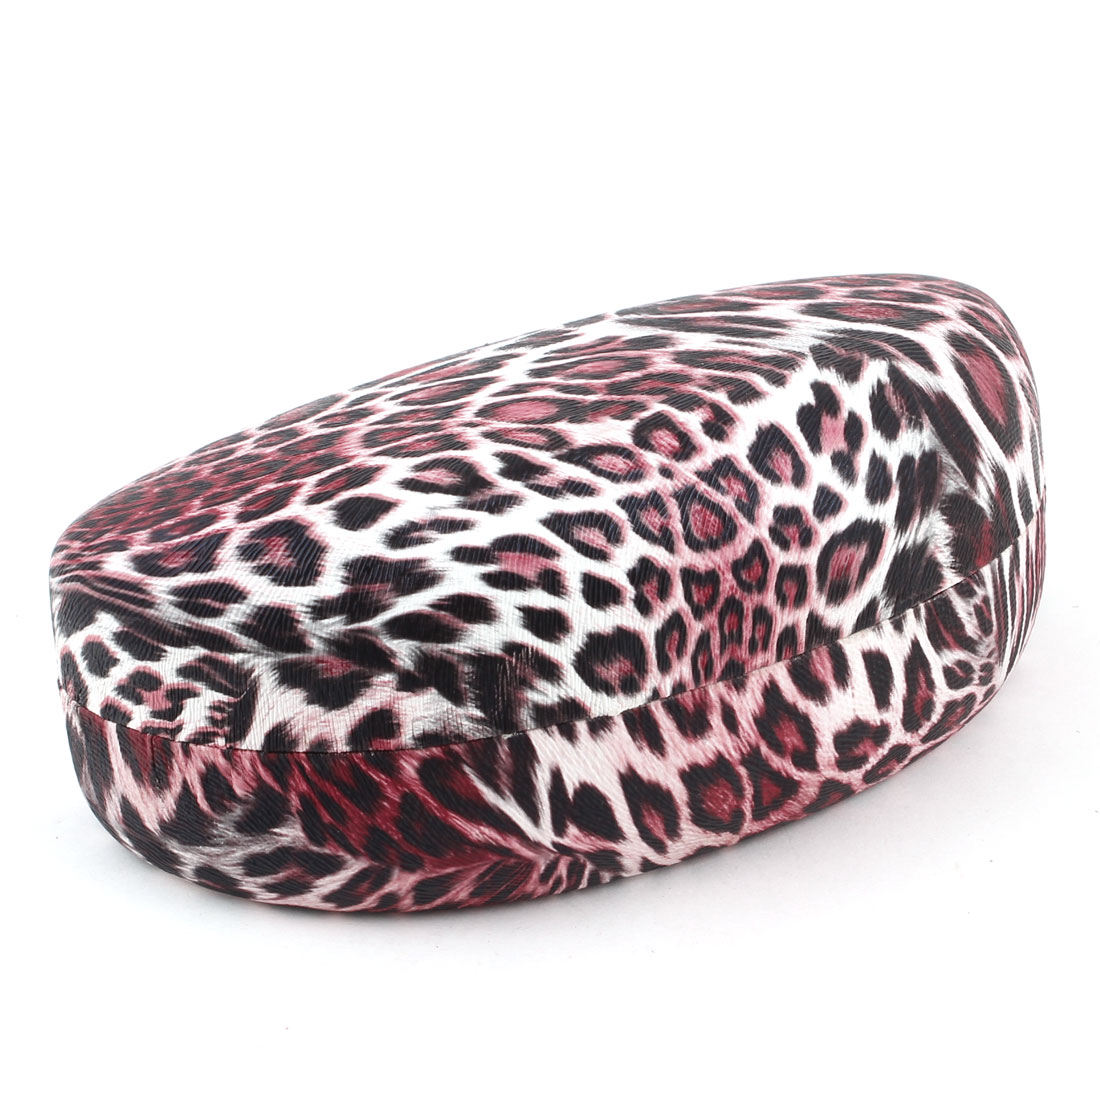 Black White Red Leopard Pattern Sunglasses Spectacles Box Case Holder Container